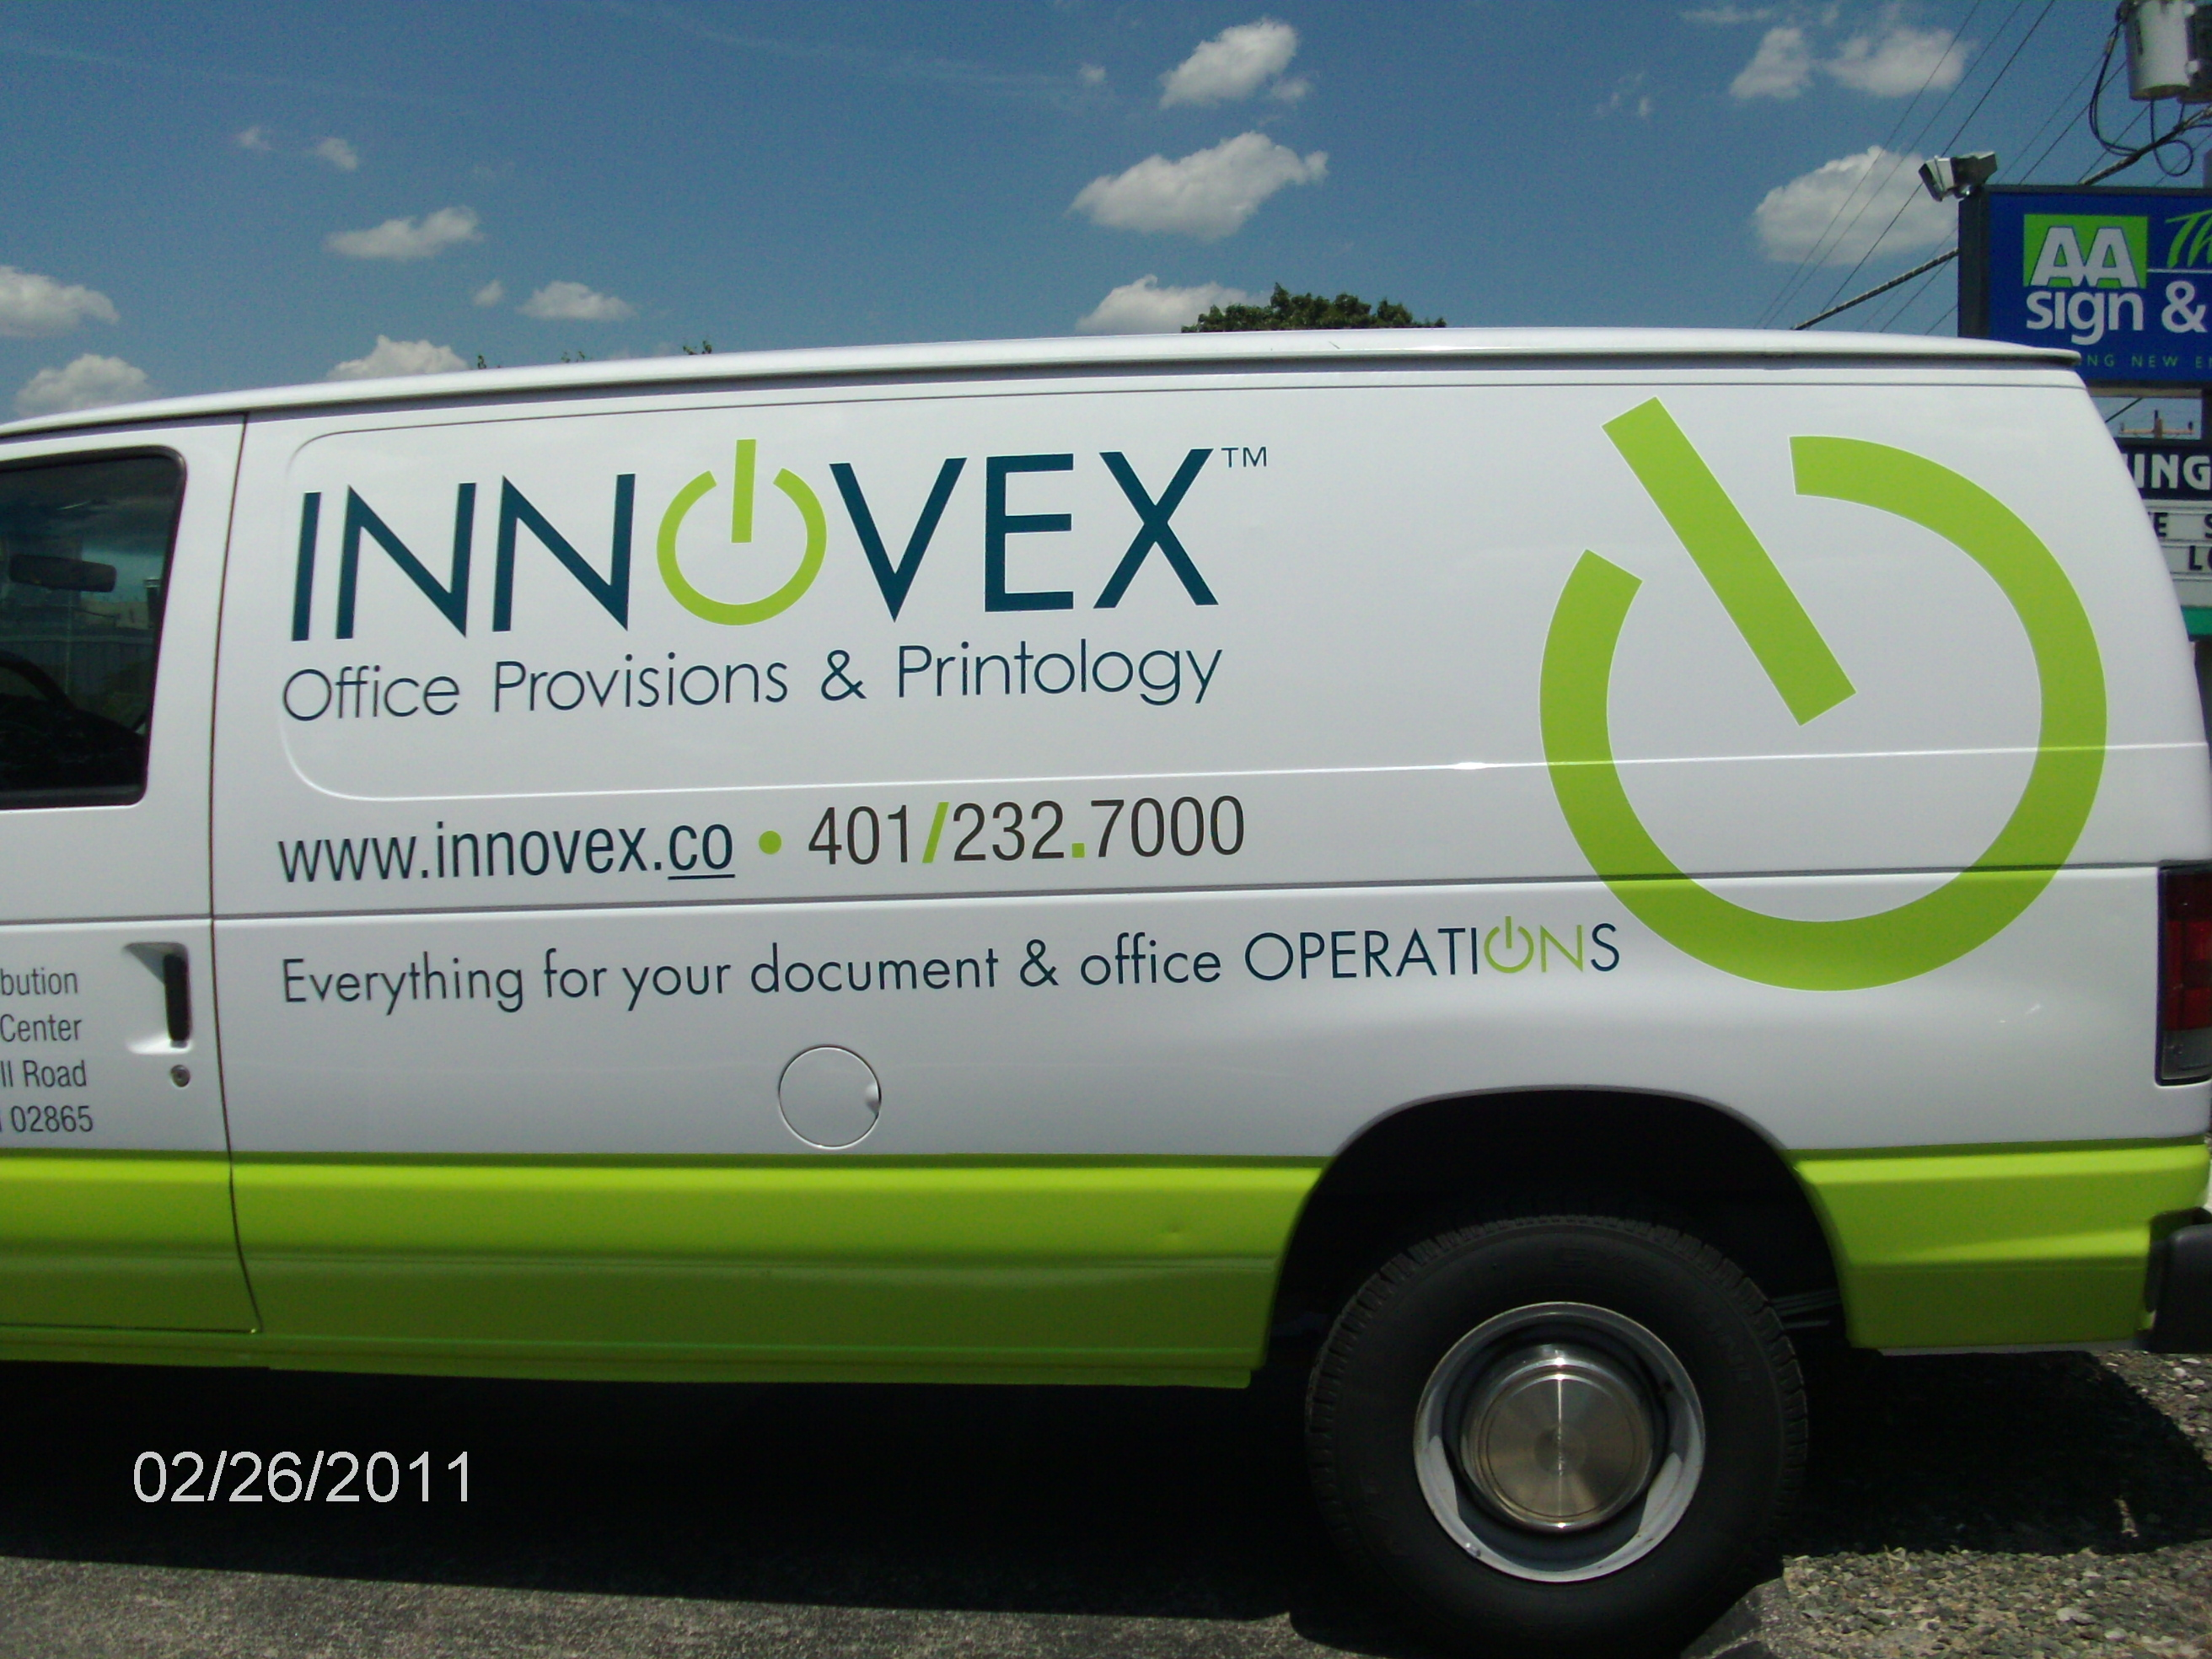 Innovex Vehicle Wrap